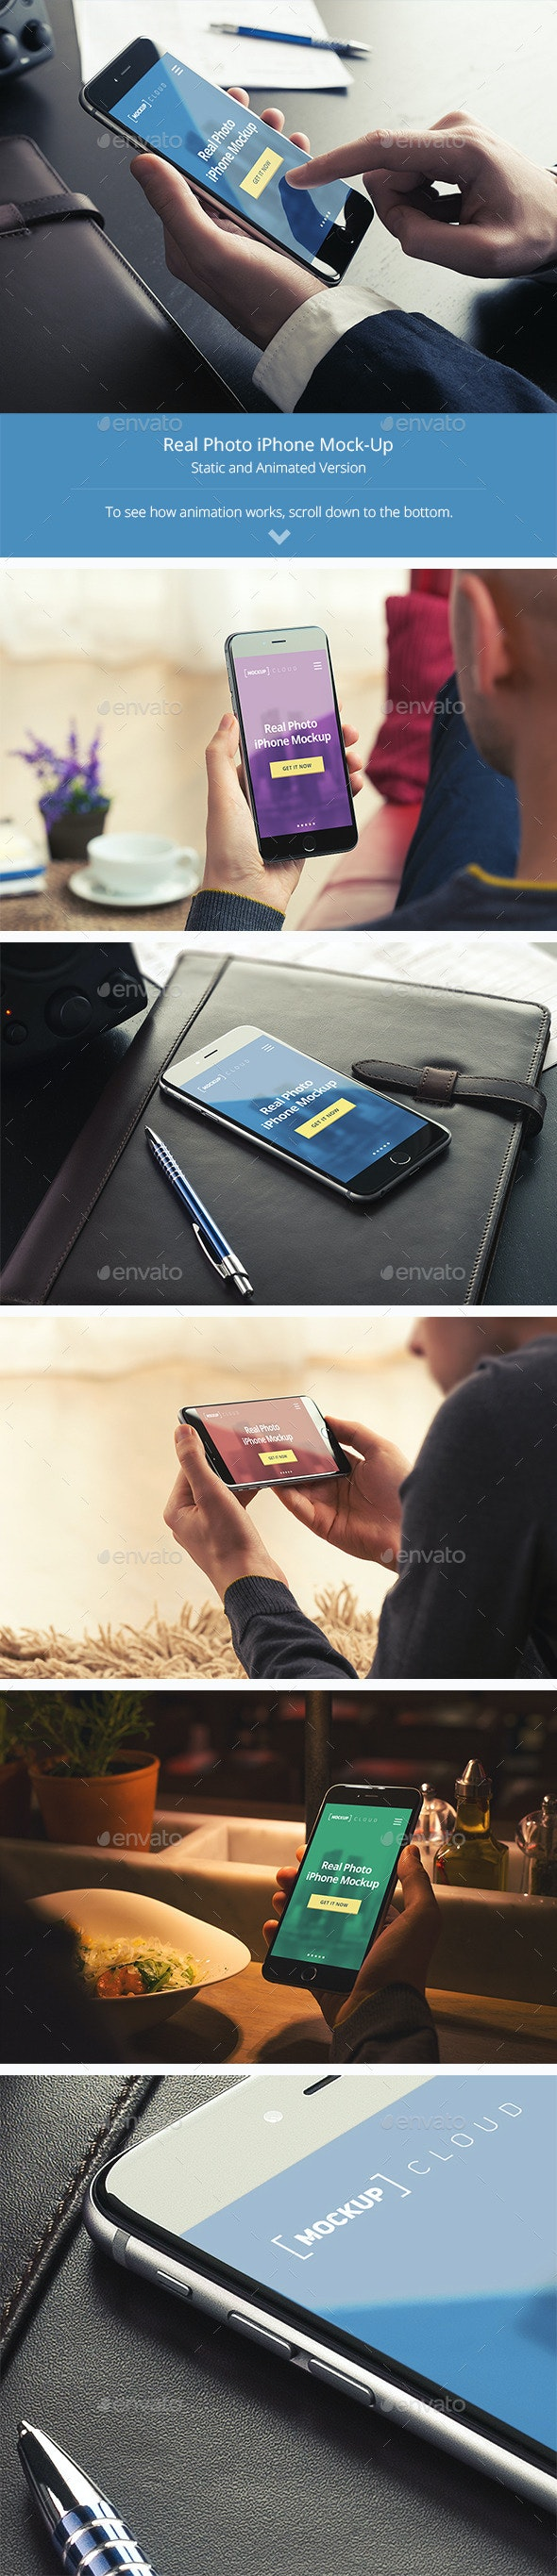 Animated Phone Mock-Up Templates - Mobile Displays